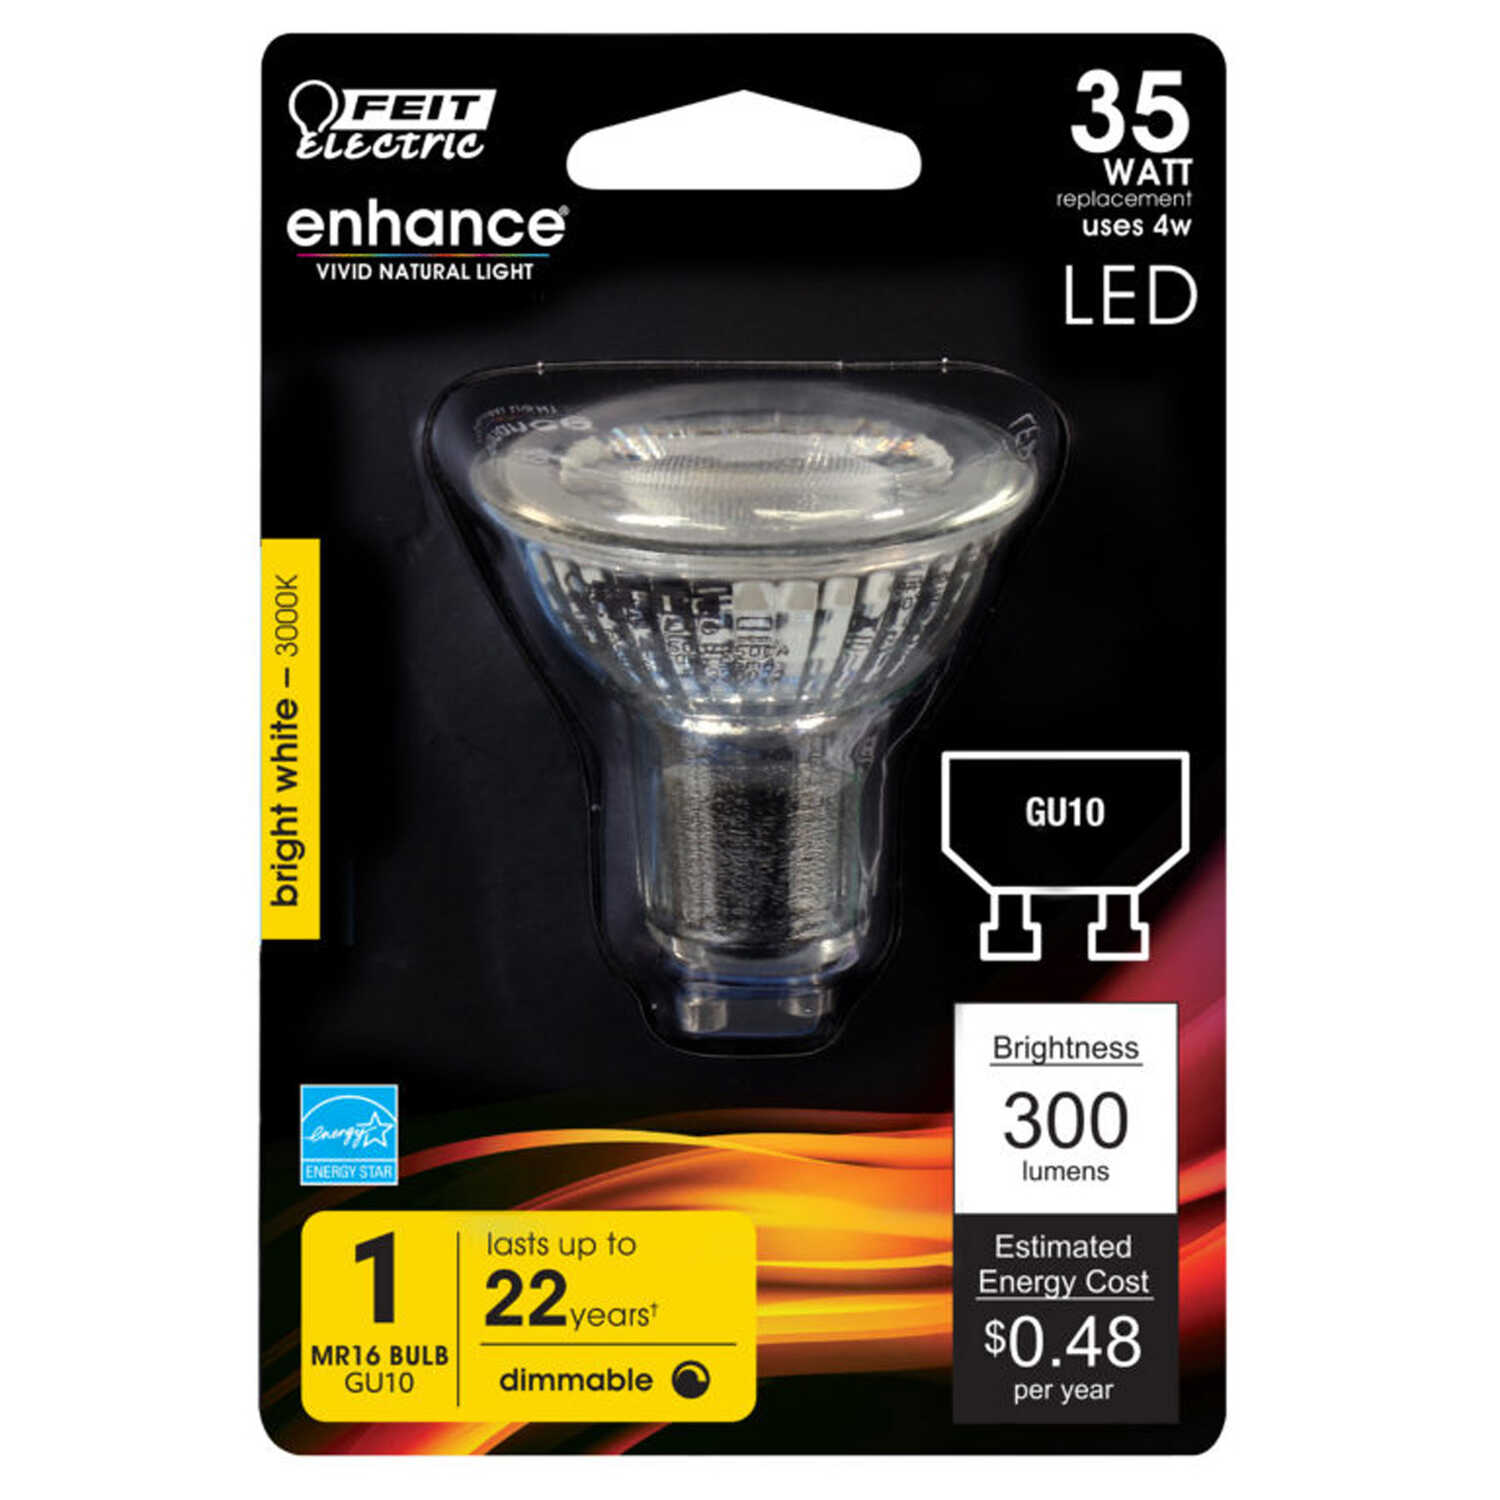 FEIT Electric  4.1 watts MR16  LED Bulb  350 lumens Reflector  35 Watt Equivalence Warm White